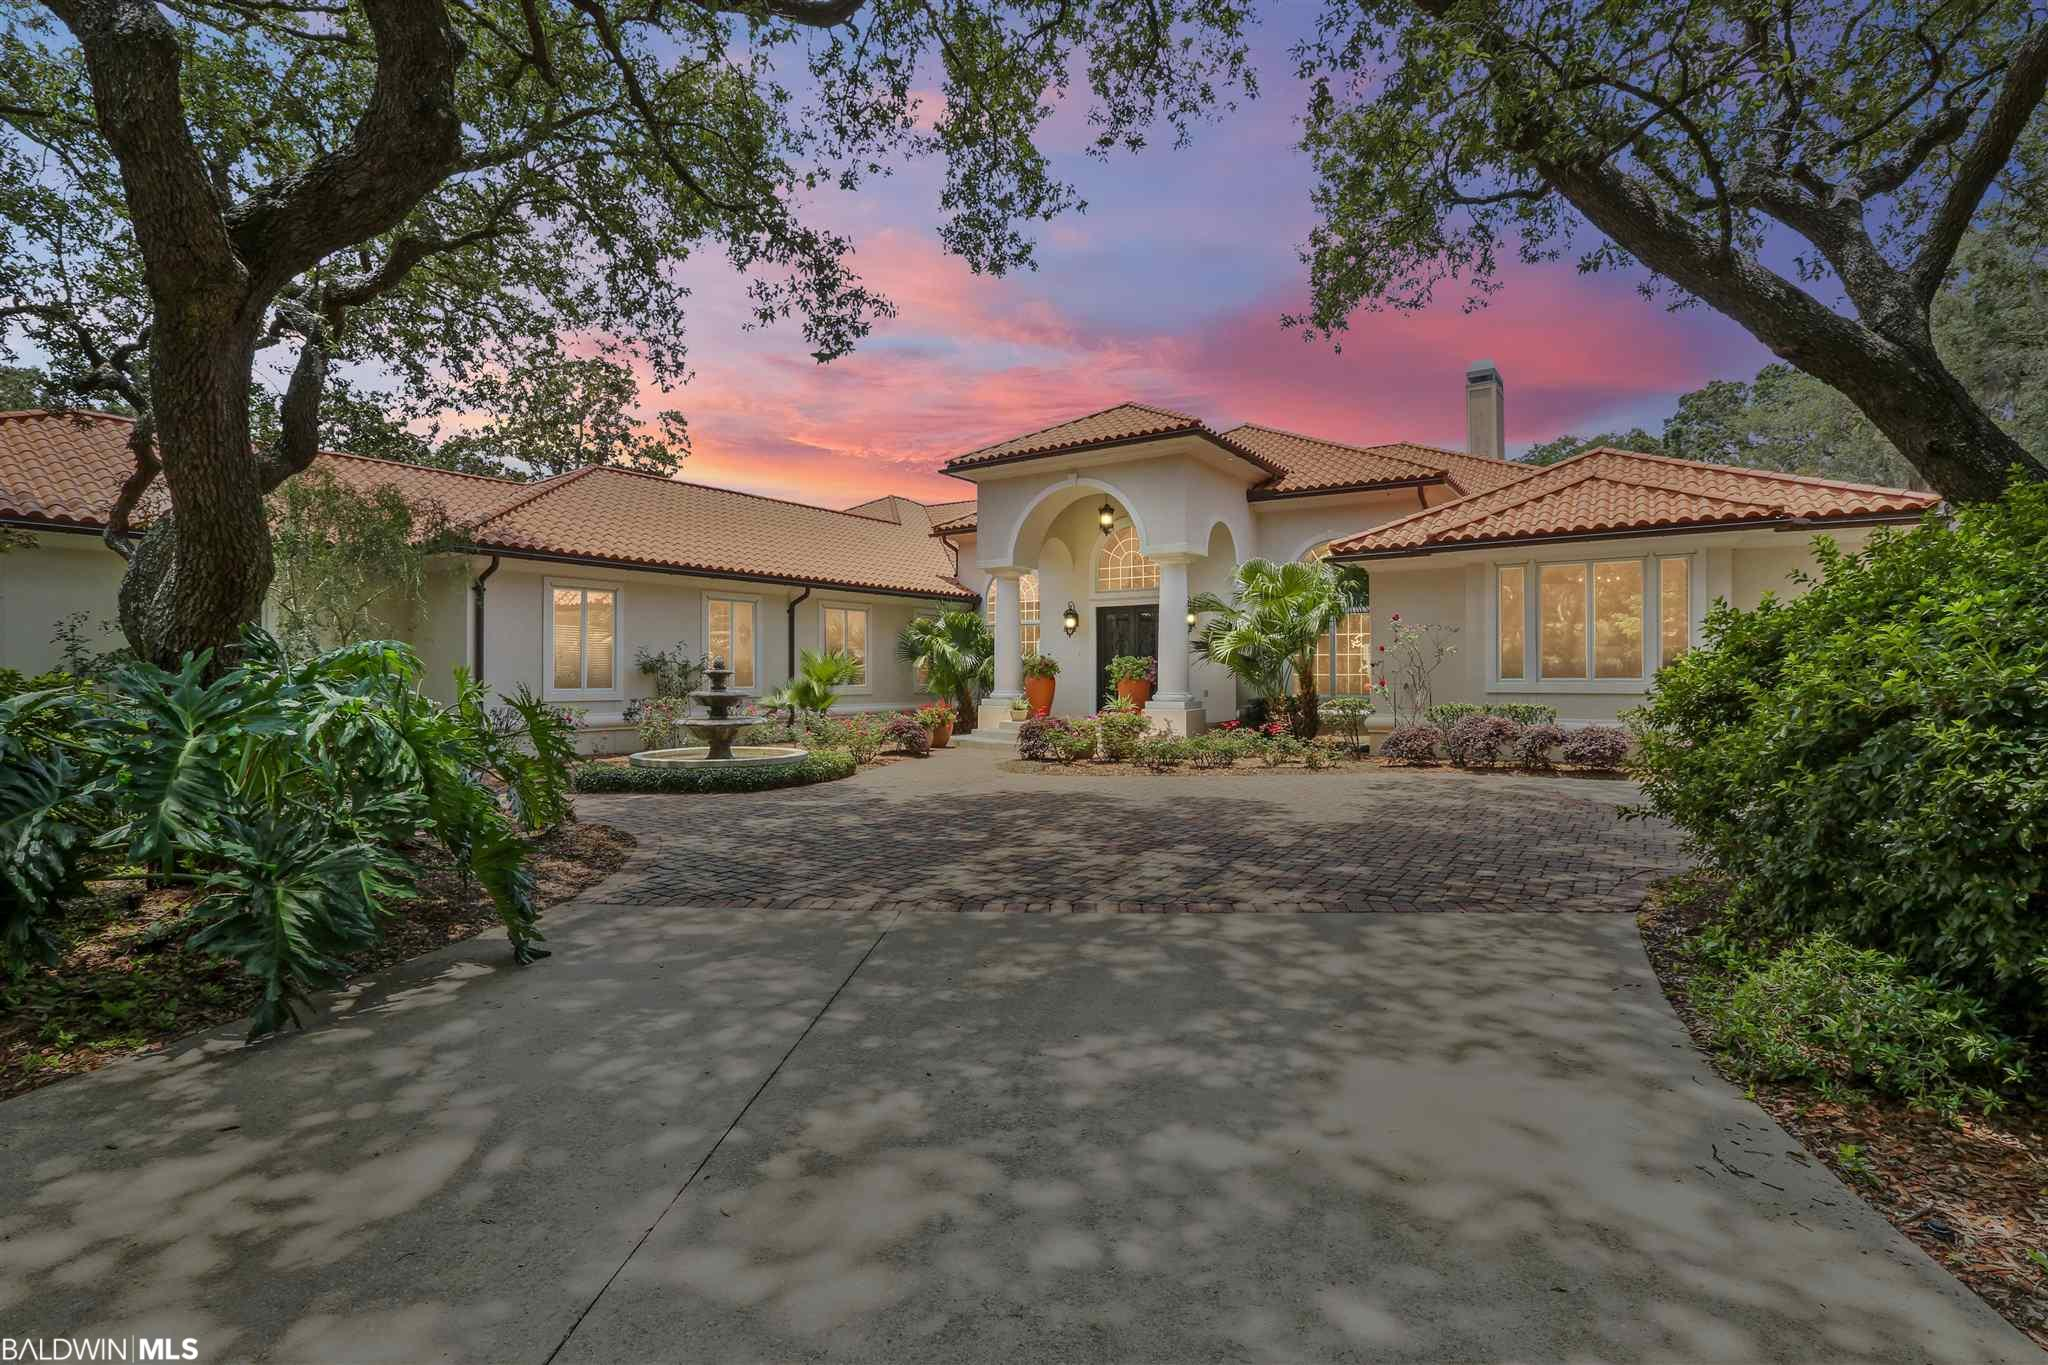 Don't believe them when they tell you, you can't have it all. You can. One of the largest residential parcels of land on Pensacola Bay with 4.6 acres, a 7200 sq ft main house, a separate 3 bedroom guest house plus a caretaker's cottage all elegantly situated on 450 feet of unparalleled bay frontage. Built in 1997 but underwent a massive addition/renovation in 2008.  Enter the grounds of this bespoke estate through the iron gated entrance. Take in the manicured landscaping, the mature trees, the shady brick walkway that leads to the regal iron front doors.  Inside you will delight in the open and sunlit floorplan, where the living and kitchen area nestle up to the screened lanai over the salt water pool and hot tub with ample seating and lounging areas for guests and family. Follow the marble floors to the window-walled sunroom which brings all of the amazing views right to your fingertips and sets the tone for many an entertaining evening. The semicircular glass bar finishes out this stylish space. The chef's kitchen is an epicurean delight with all Thermador appliances, Blue Bahia granite from Brazil, colorful Italian glass light fixtures and an abundance of storage. Retire to the master room wing of the house which features his and hers baths, two sitting areas, walk in closets, stunning views of the pool and bay. Guests will love any of the four guest rooms in the main house, all with views of the bay and private or shared baths. A boat dock with two lifts is ready for your fishing pleasure!  Entertaining a crowd? Not a problem with your separate 3 bedroom 2.5 bath guest house which also has a two car garage.  Living room, sitting room with a fireplace, kitchen and a gorgeous Pergola-covered outside eating area.  But this home is not just a pretty face.  It is perched 25 feet in elevation, has an engineered double sea wall, a safe room in the main house and a generator standing ready to power both homes.